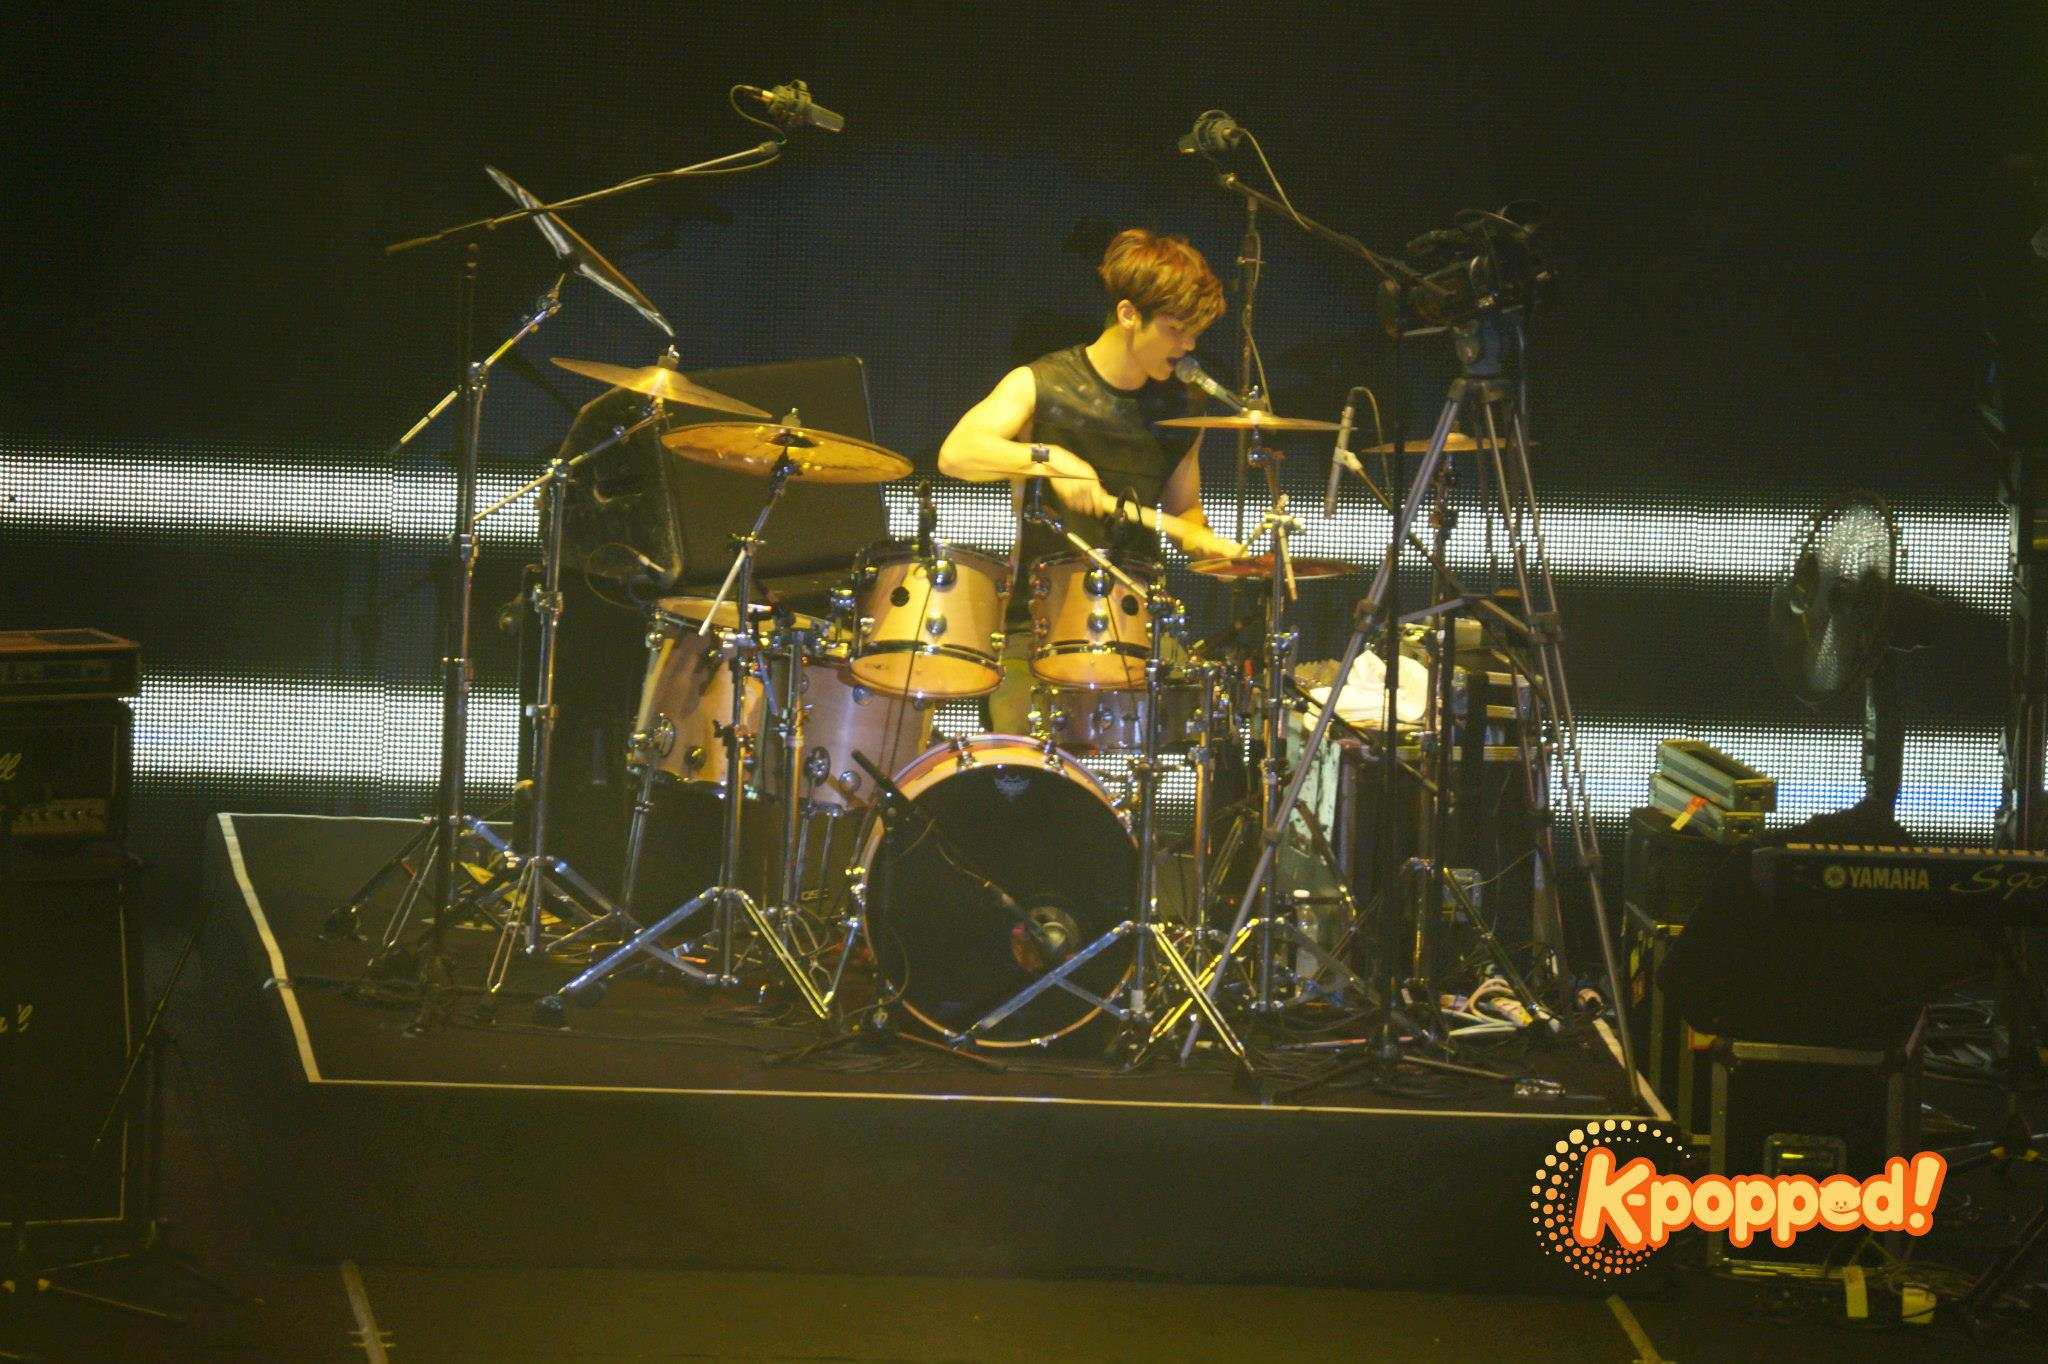 [Event Coverage] CNBLUE rocked the night at the 2013 BLUE MOON World Tour Live in Malaysia